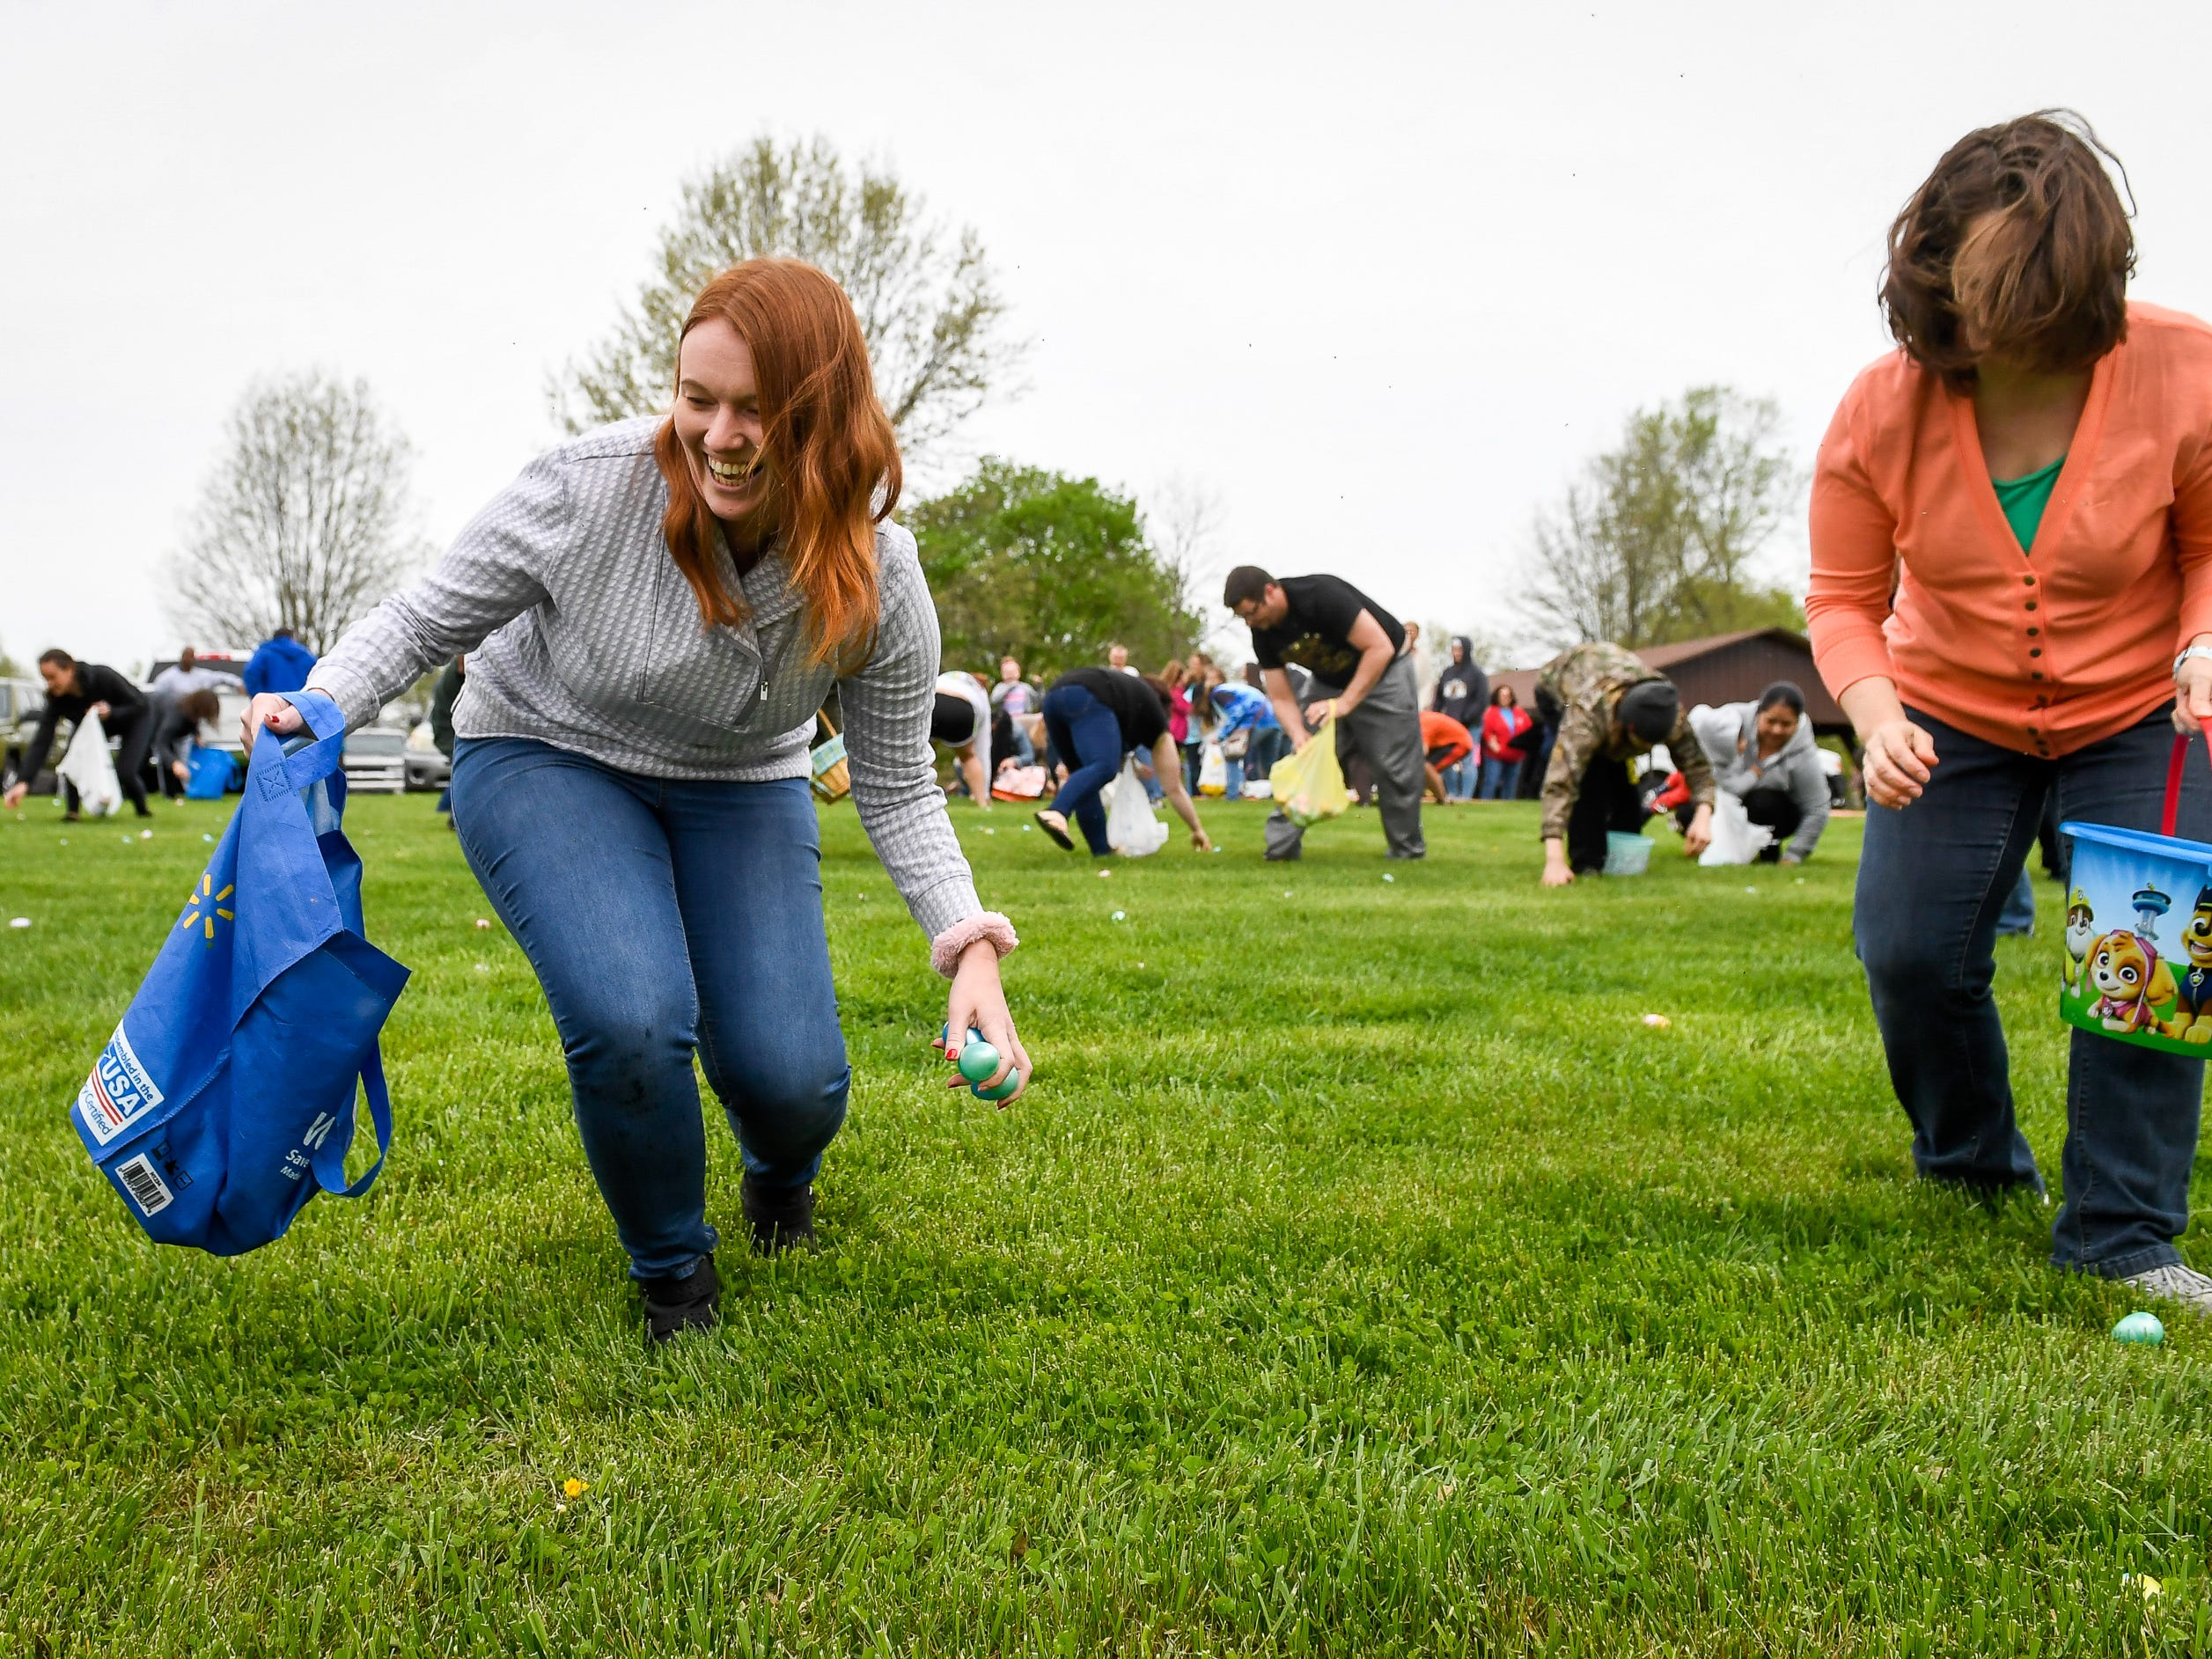 Halee Moscato, left, and Valerie Arvin look for eggs in the adult egg hunt at Community Park for the City of Henderson Parks and Recreation Department's annual Easter Egg Hunt Saturday, April 13, 2019.